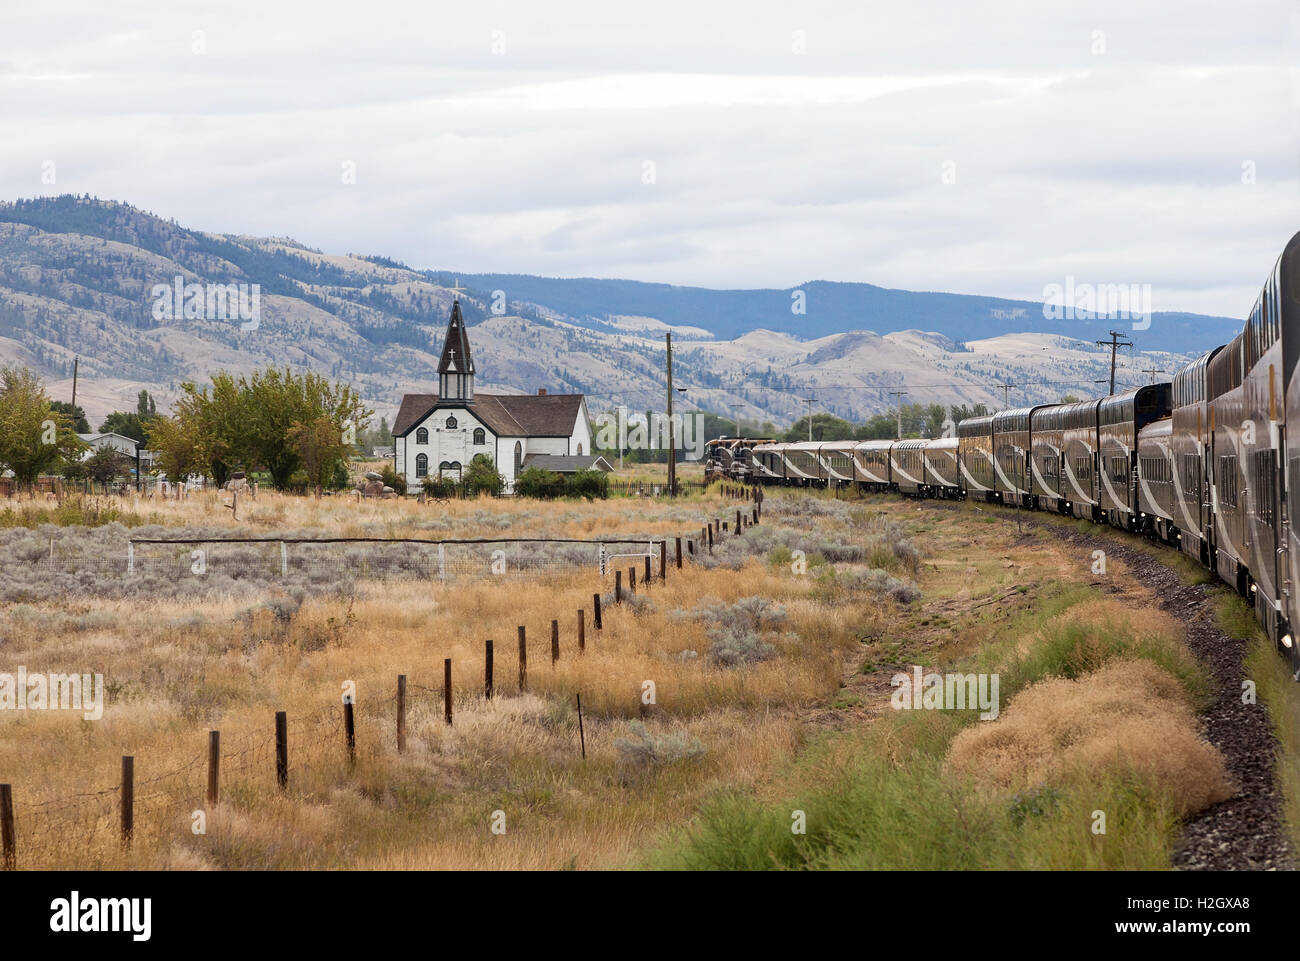 Rocky Mountaineer train passing St. Joseph's Church, a historic small wooden church near Kamloops, Canada - Stock Image